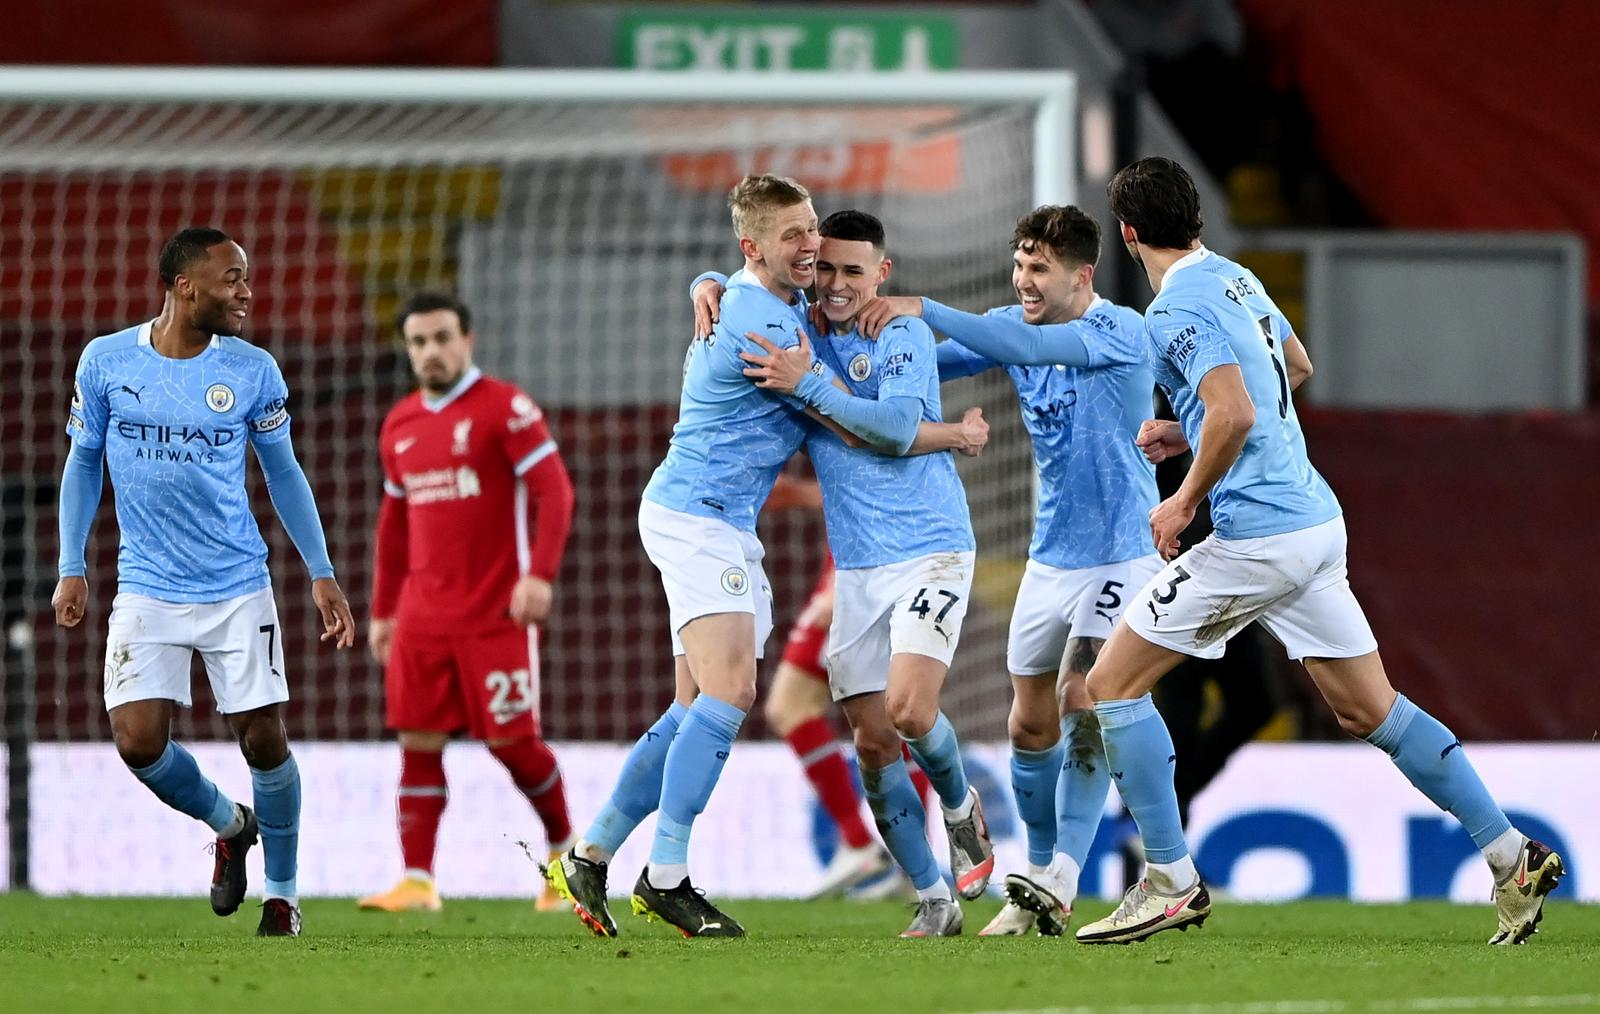 Manchester City's Phil Foden celebrates scoring their fourth goal with teammates. Photo: Reuters